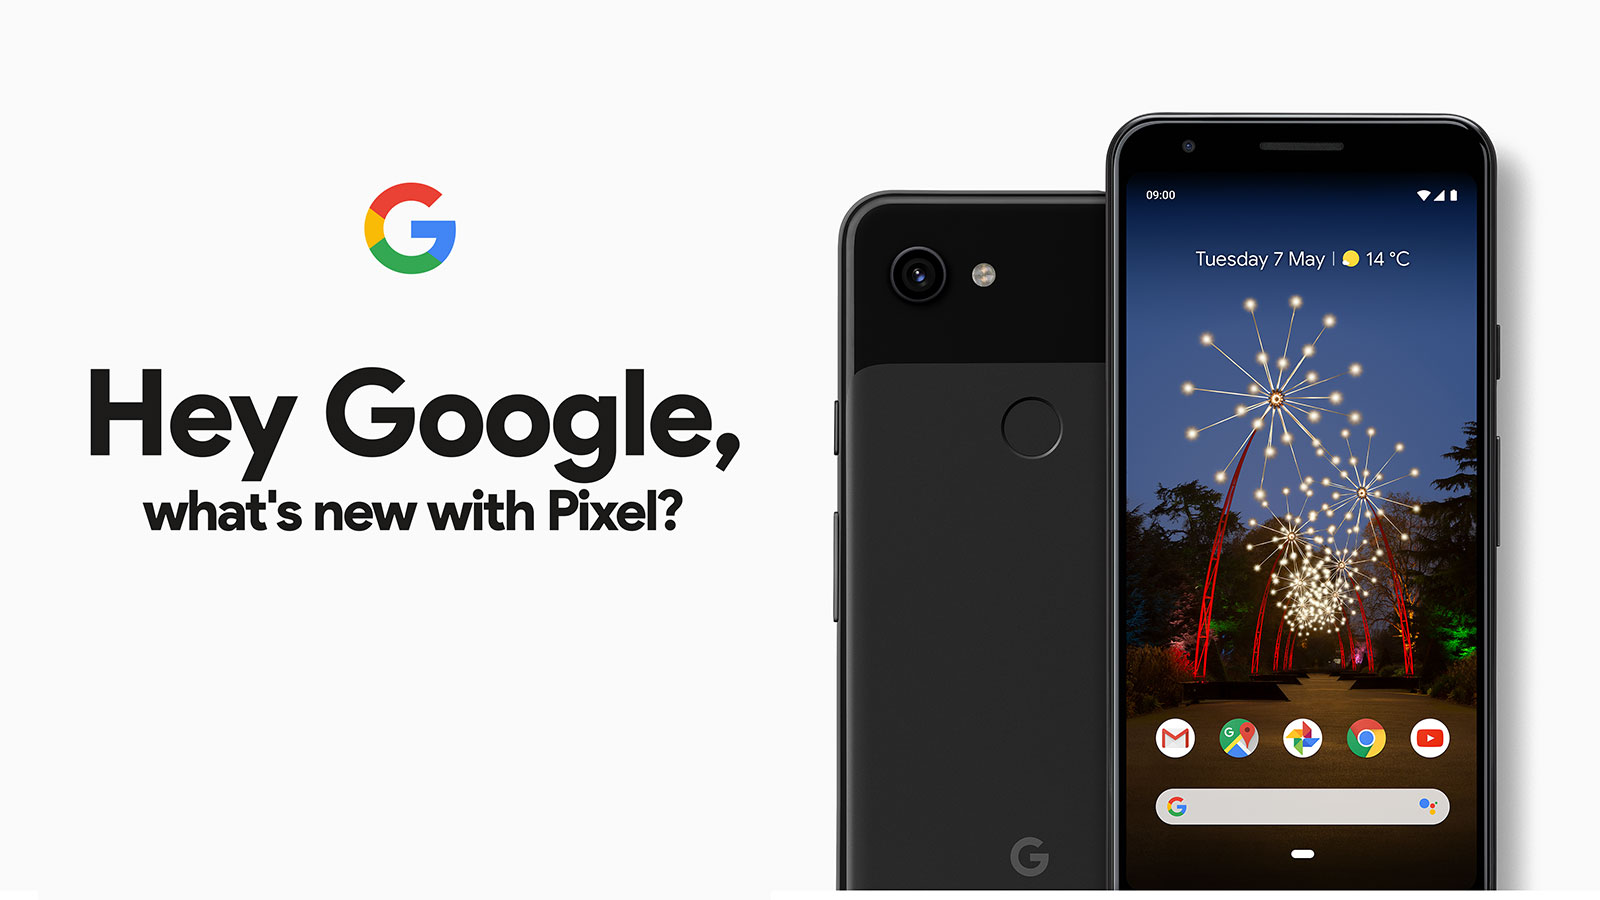 Googel Pixel 3a XL Just Black rear and front view of the smartphone